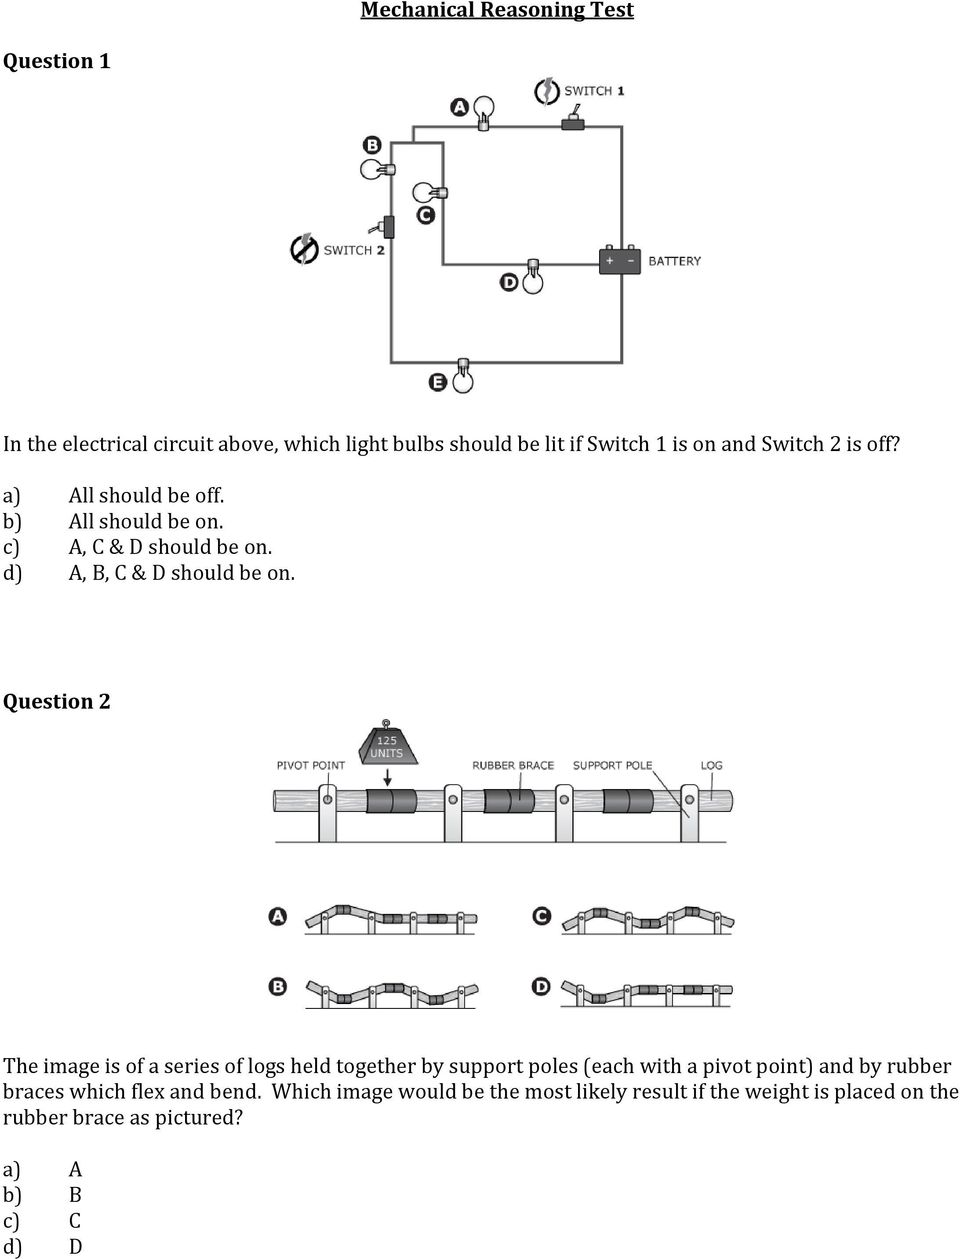 Mechanical reasoning test questions and answers pdf